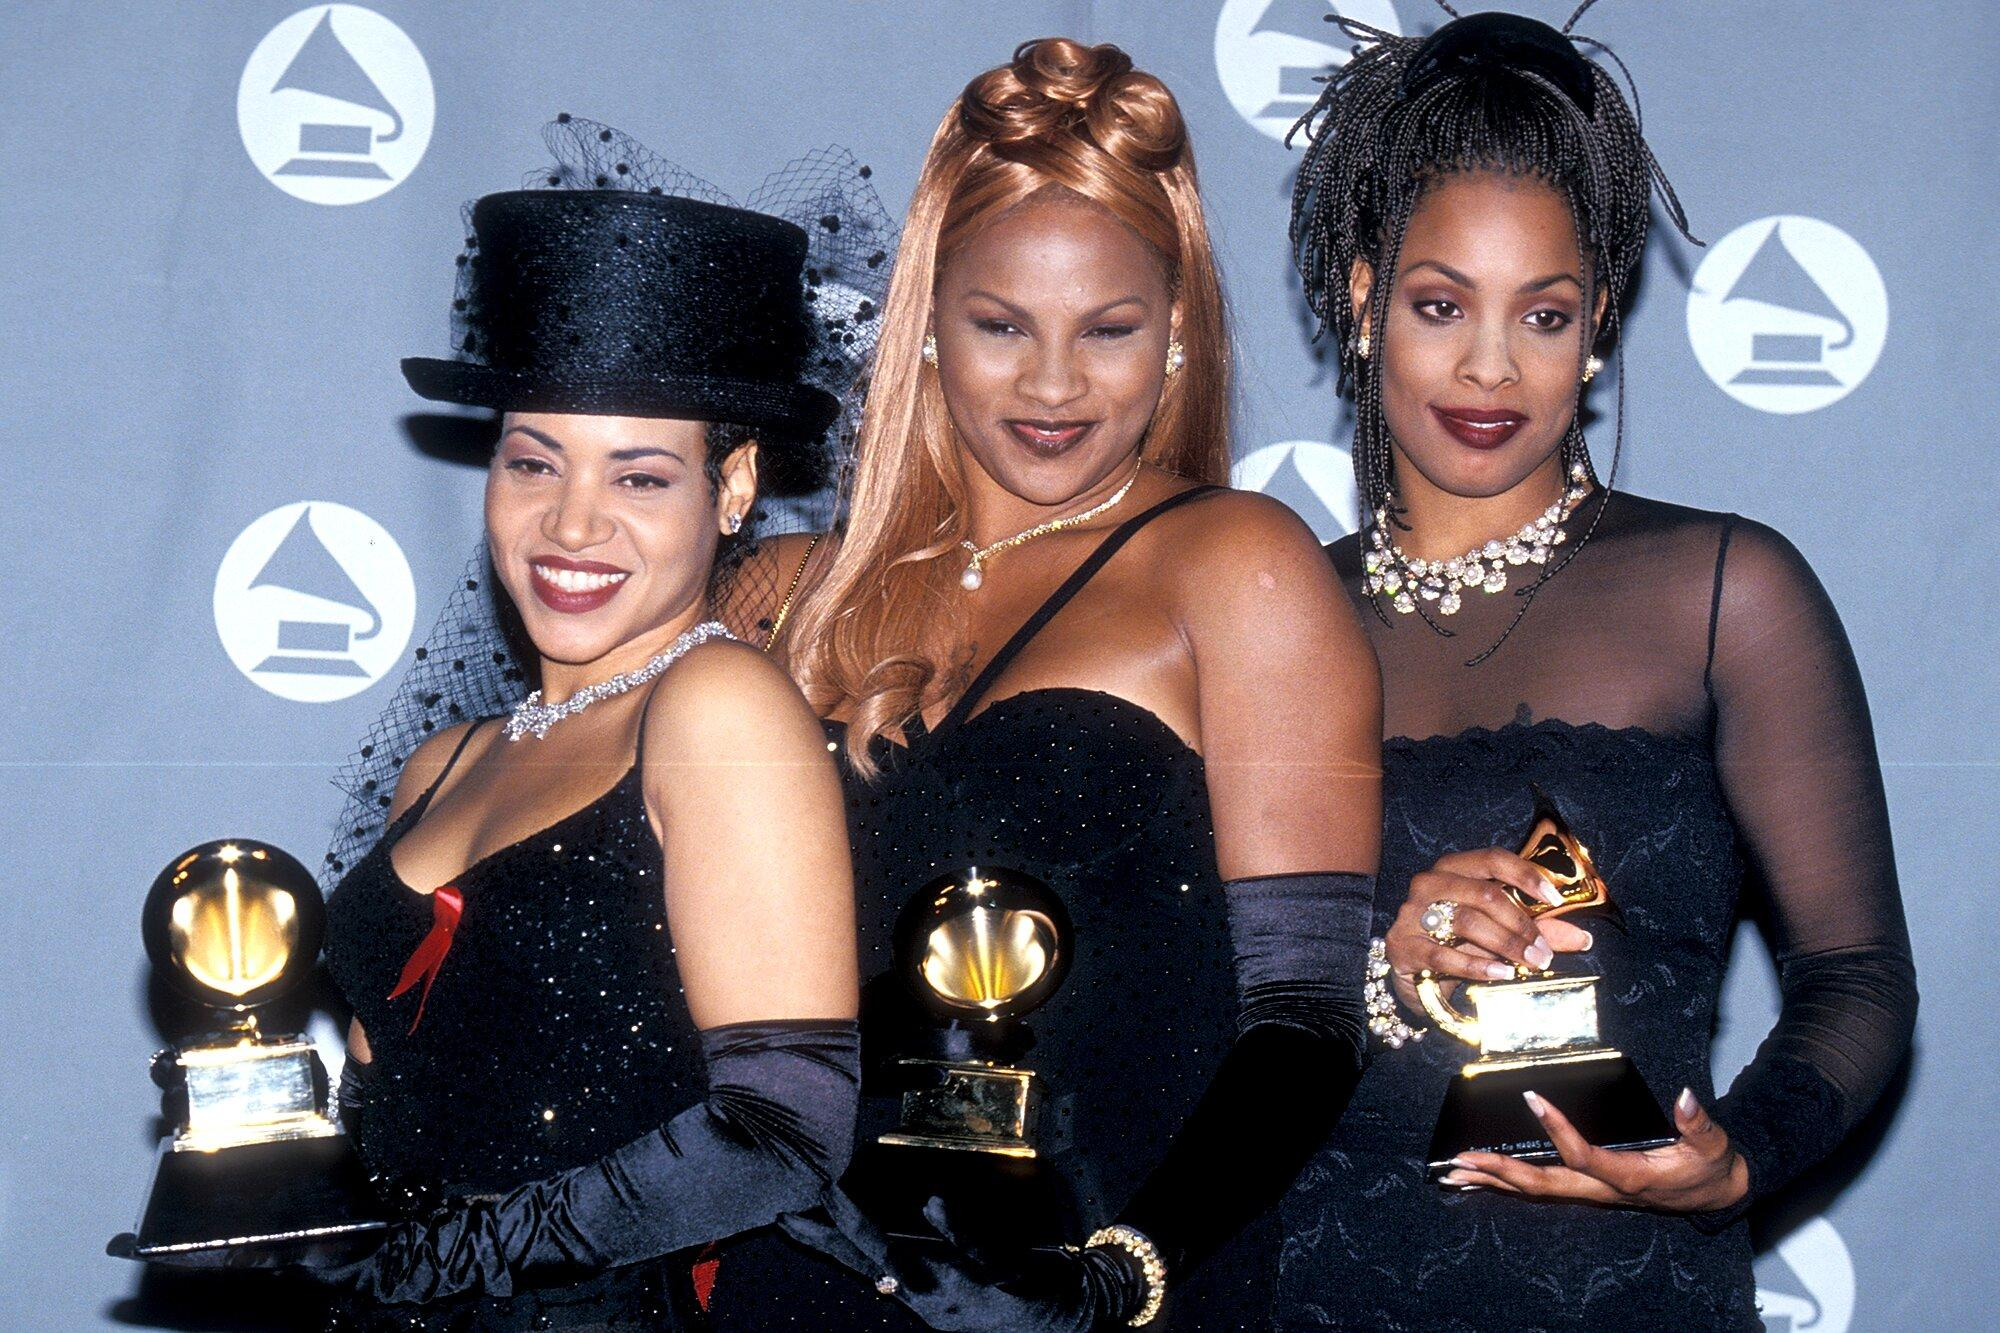 DJ Spinderella disappointed over being 'wrongfully excluded' from Salt-N-Pepa's Lifetime biopic